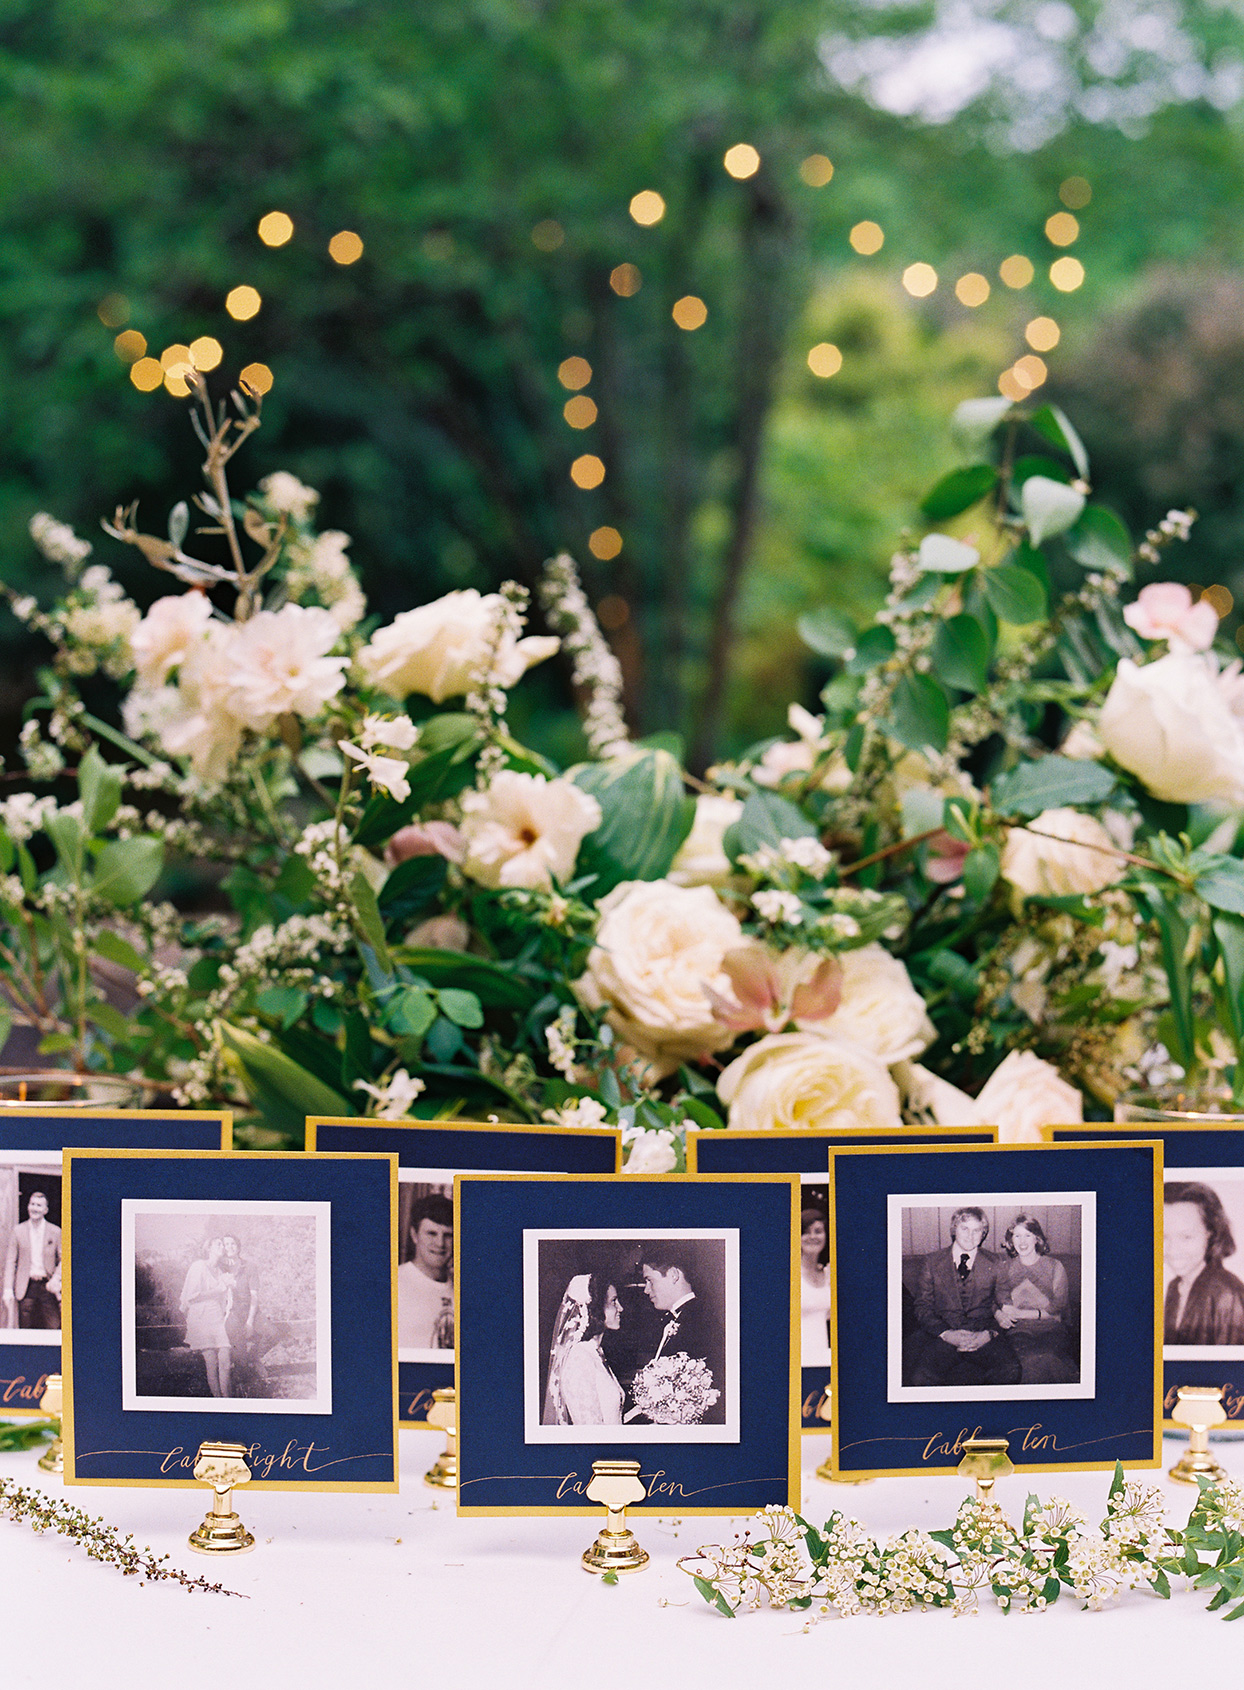 wedding place cards with black and white pictures